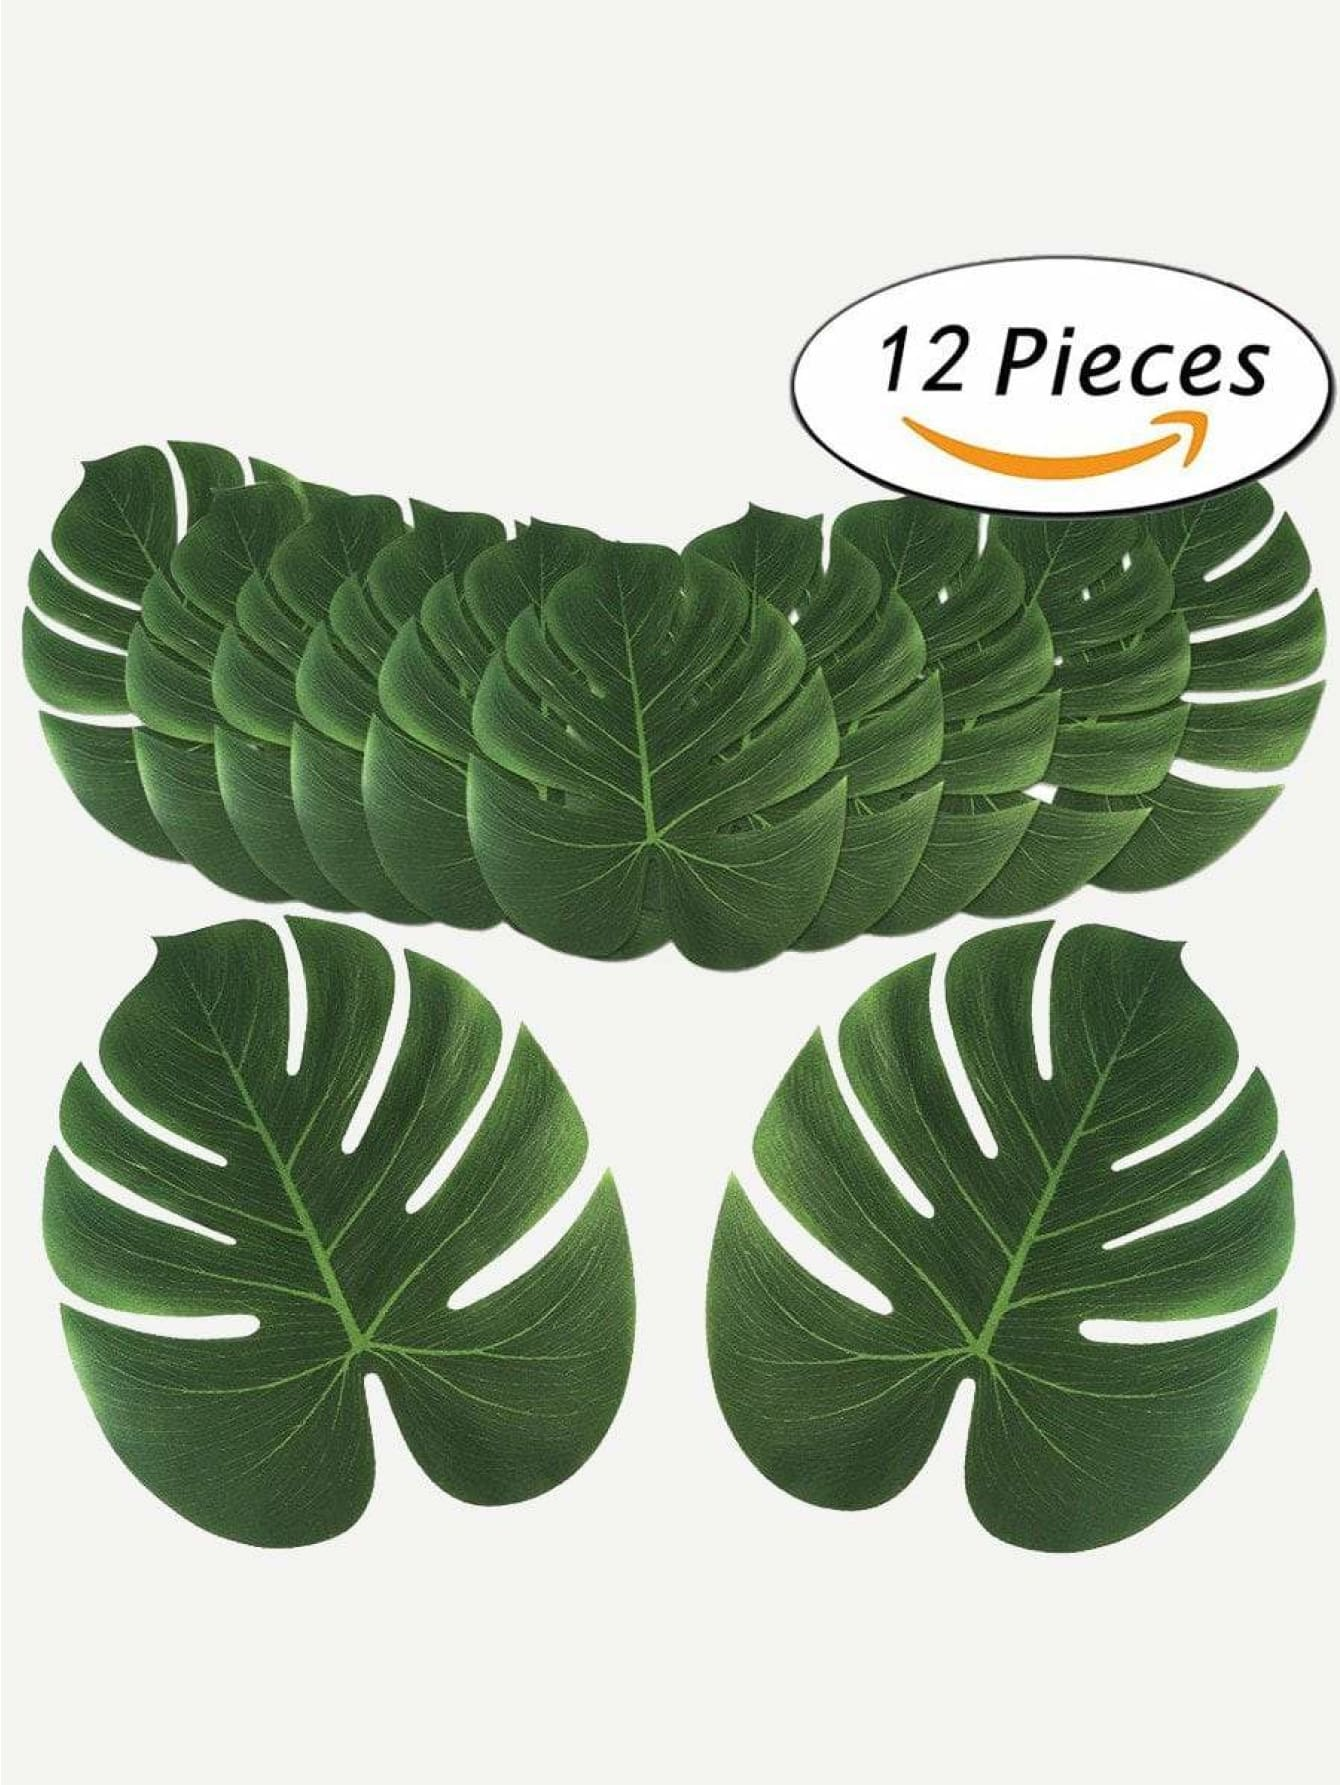 Turtle Leaf Design Placemat 12Pcs - One-Size / One Color - Dining